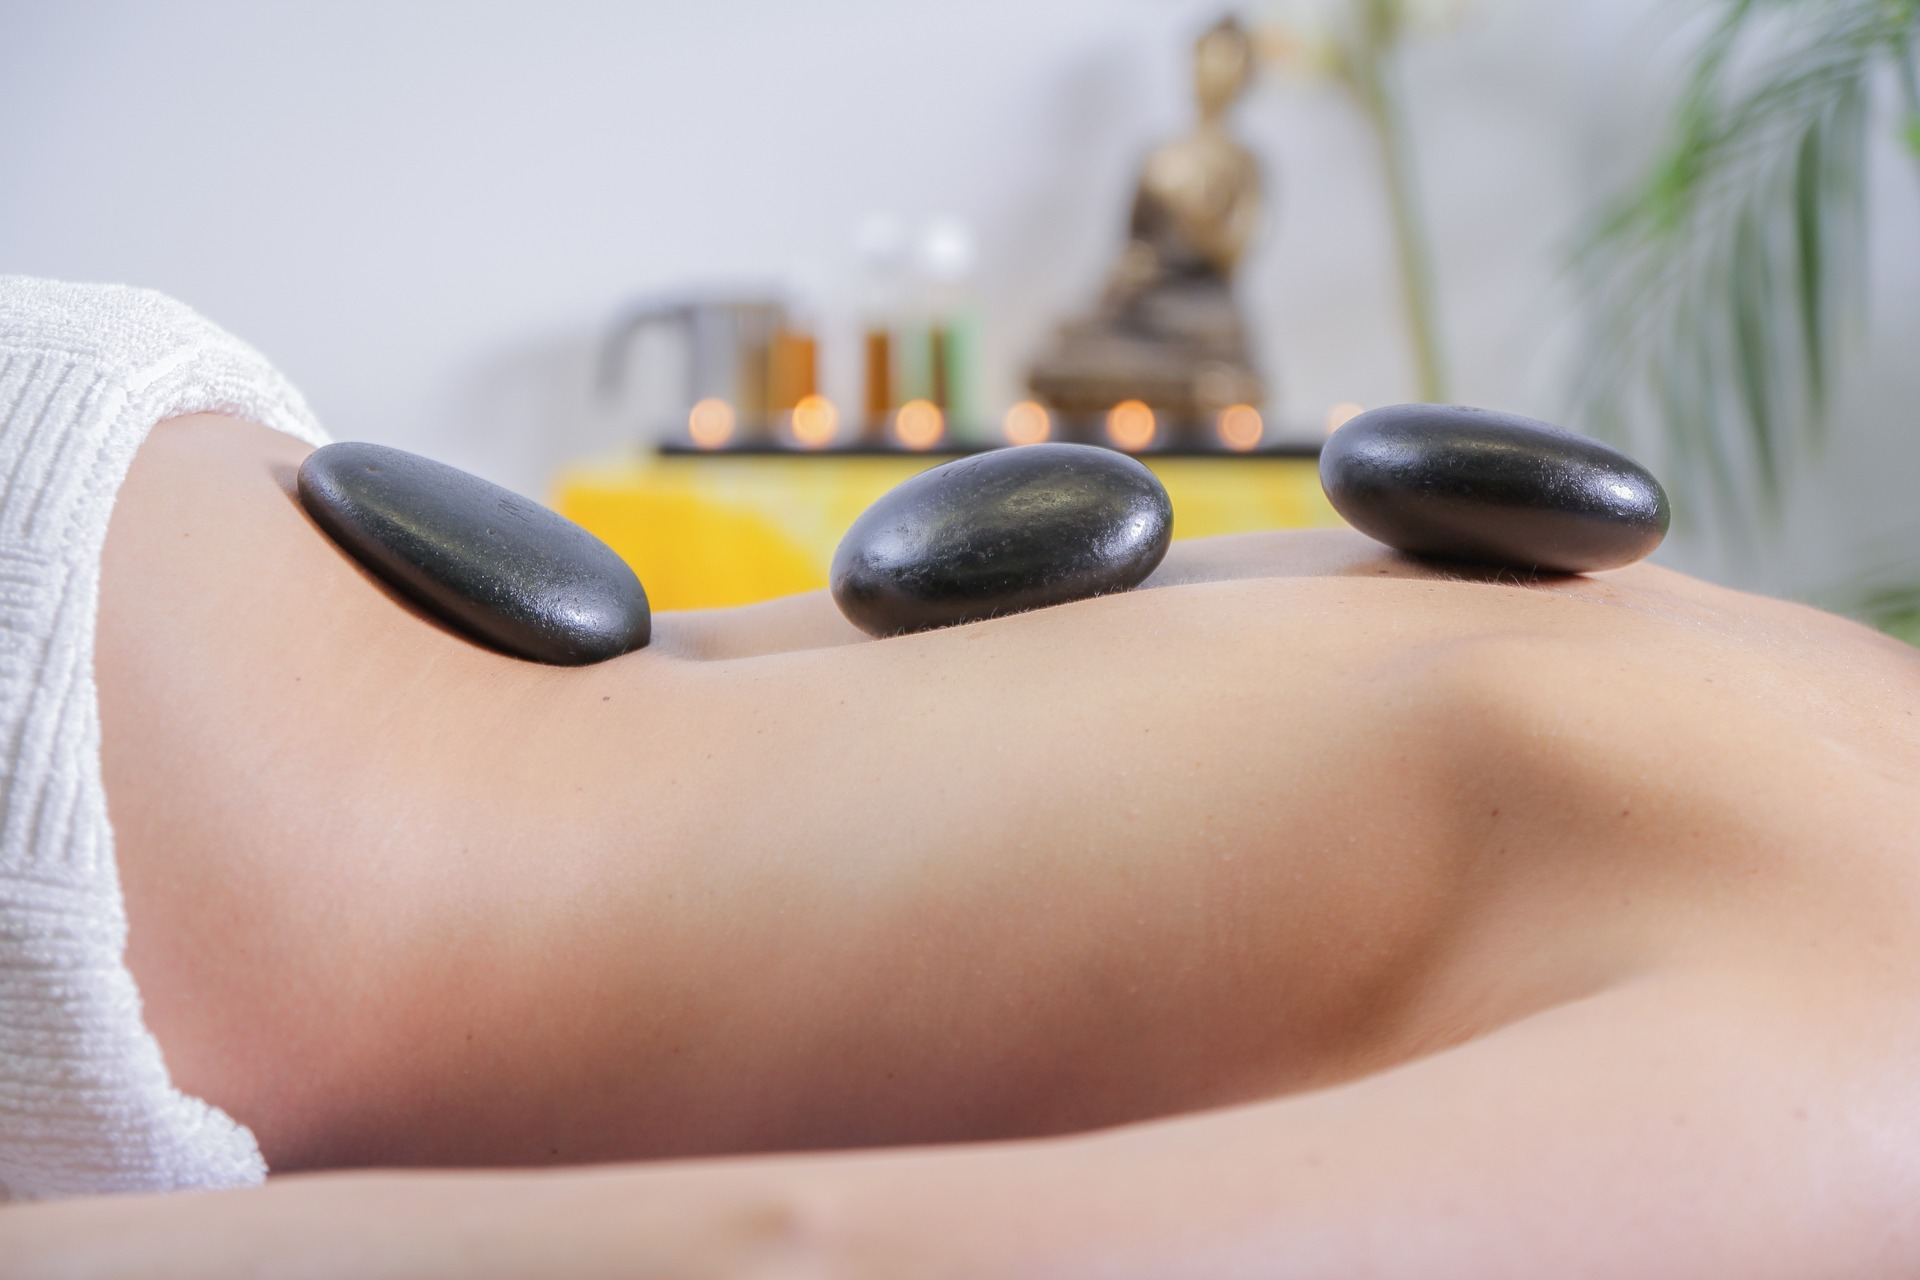 Image of hot stone therapy showing woman's back with 3 dark, circular stones